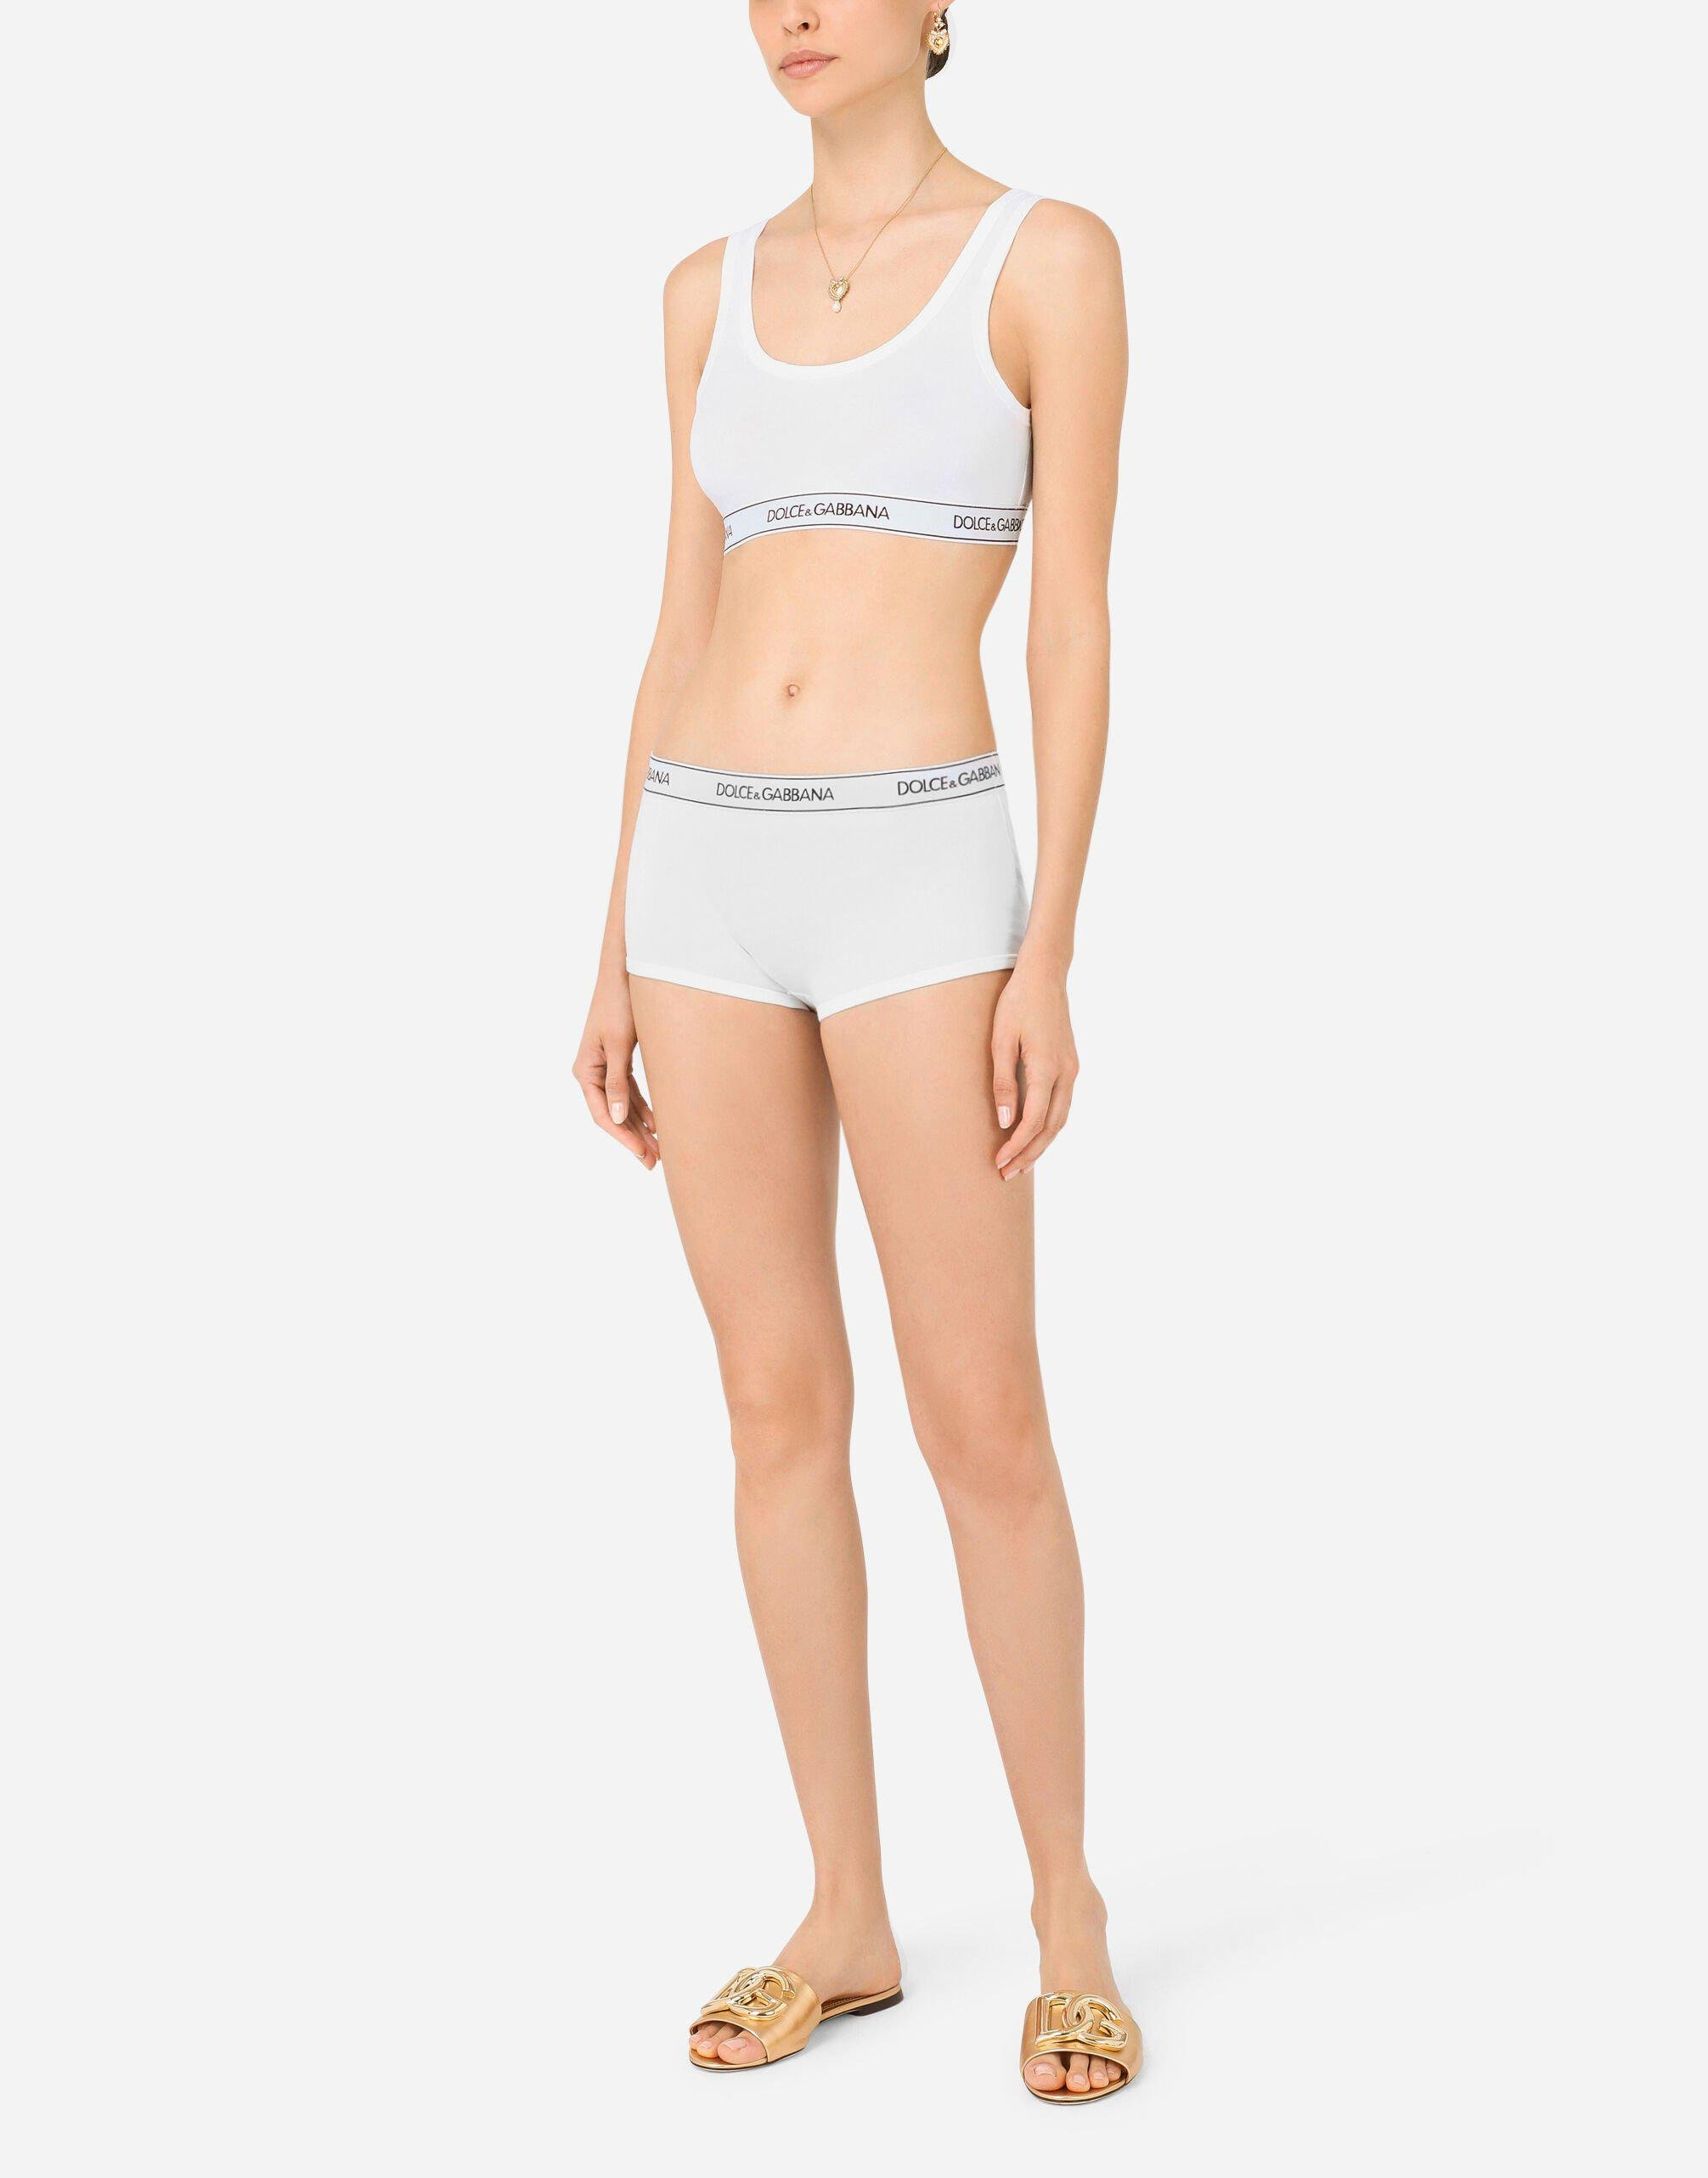 Jersey bralet with branded elastic and wide straps